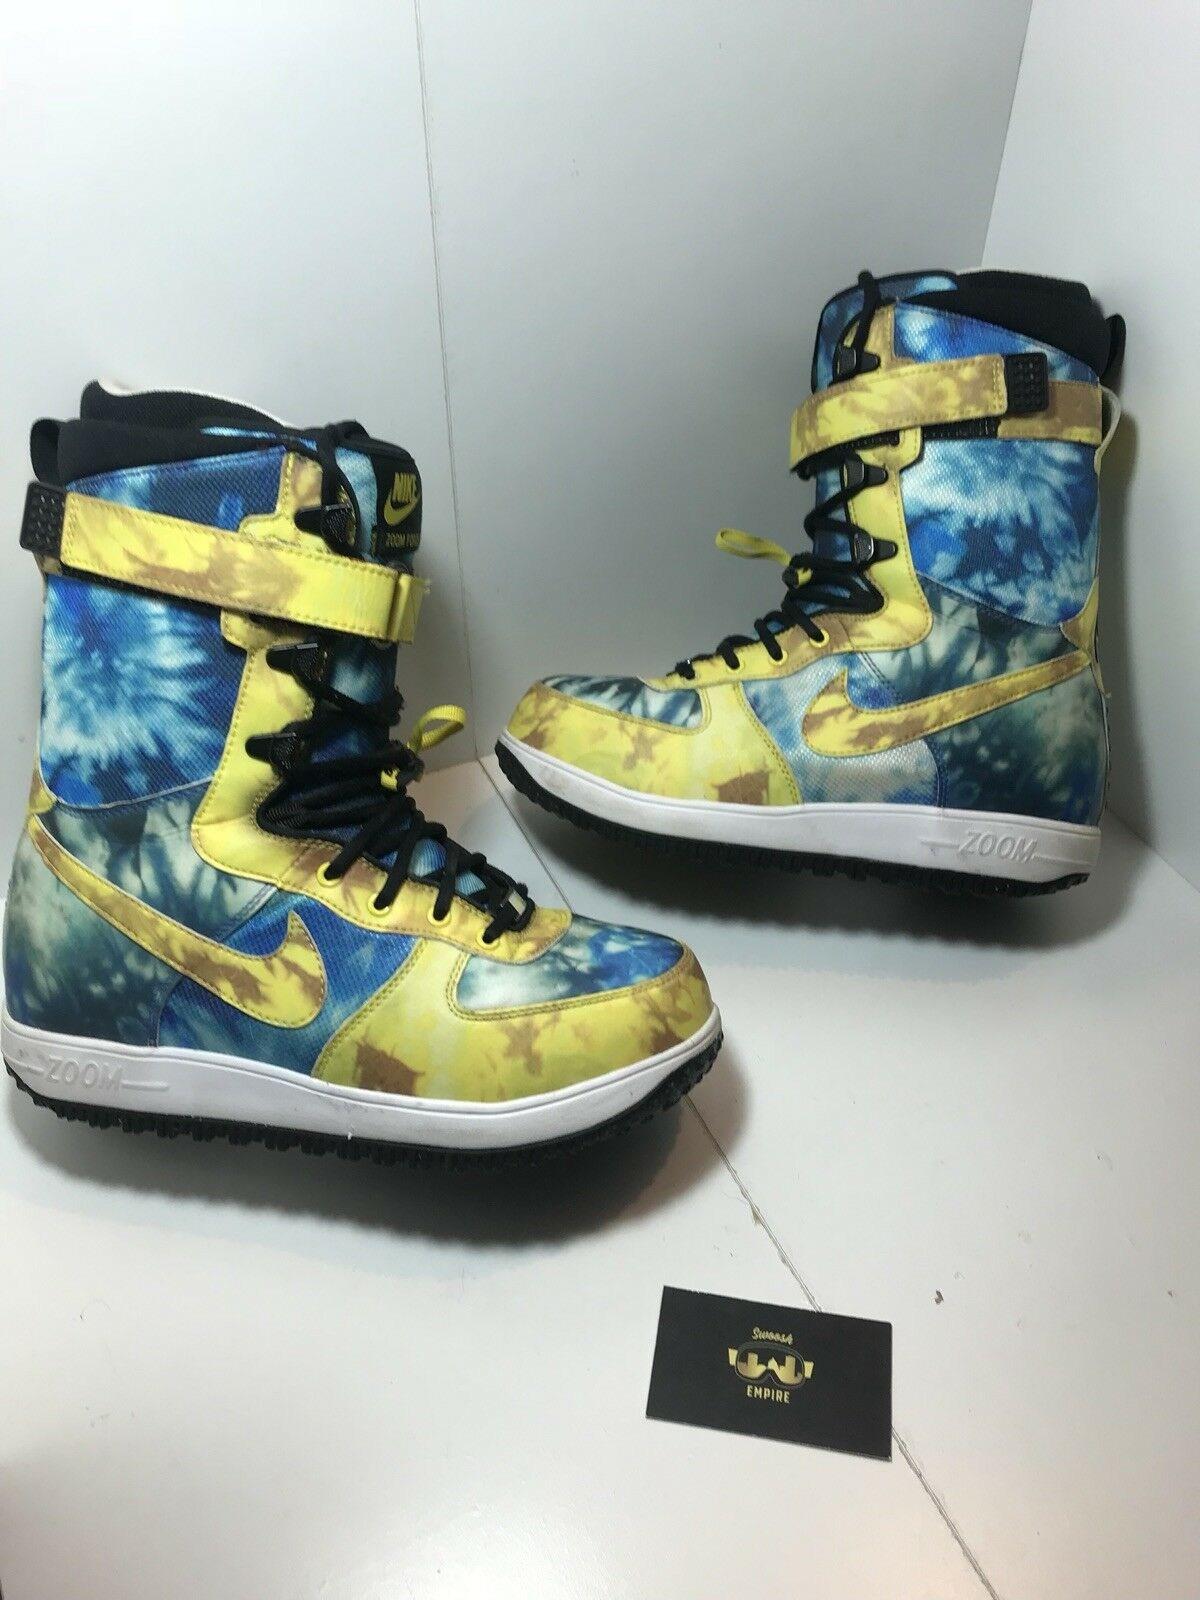 Nike Zoom Force 1 ZF1 Snowboarding Boots Tie-Dye 334841-271 Size 8 US Tie-Dye Boots Rare 3af89e